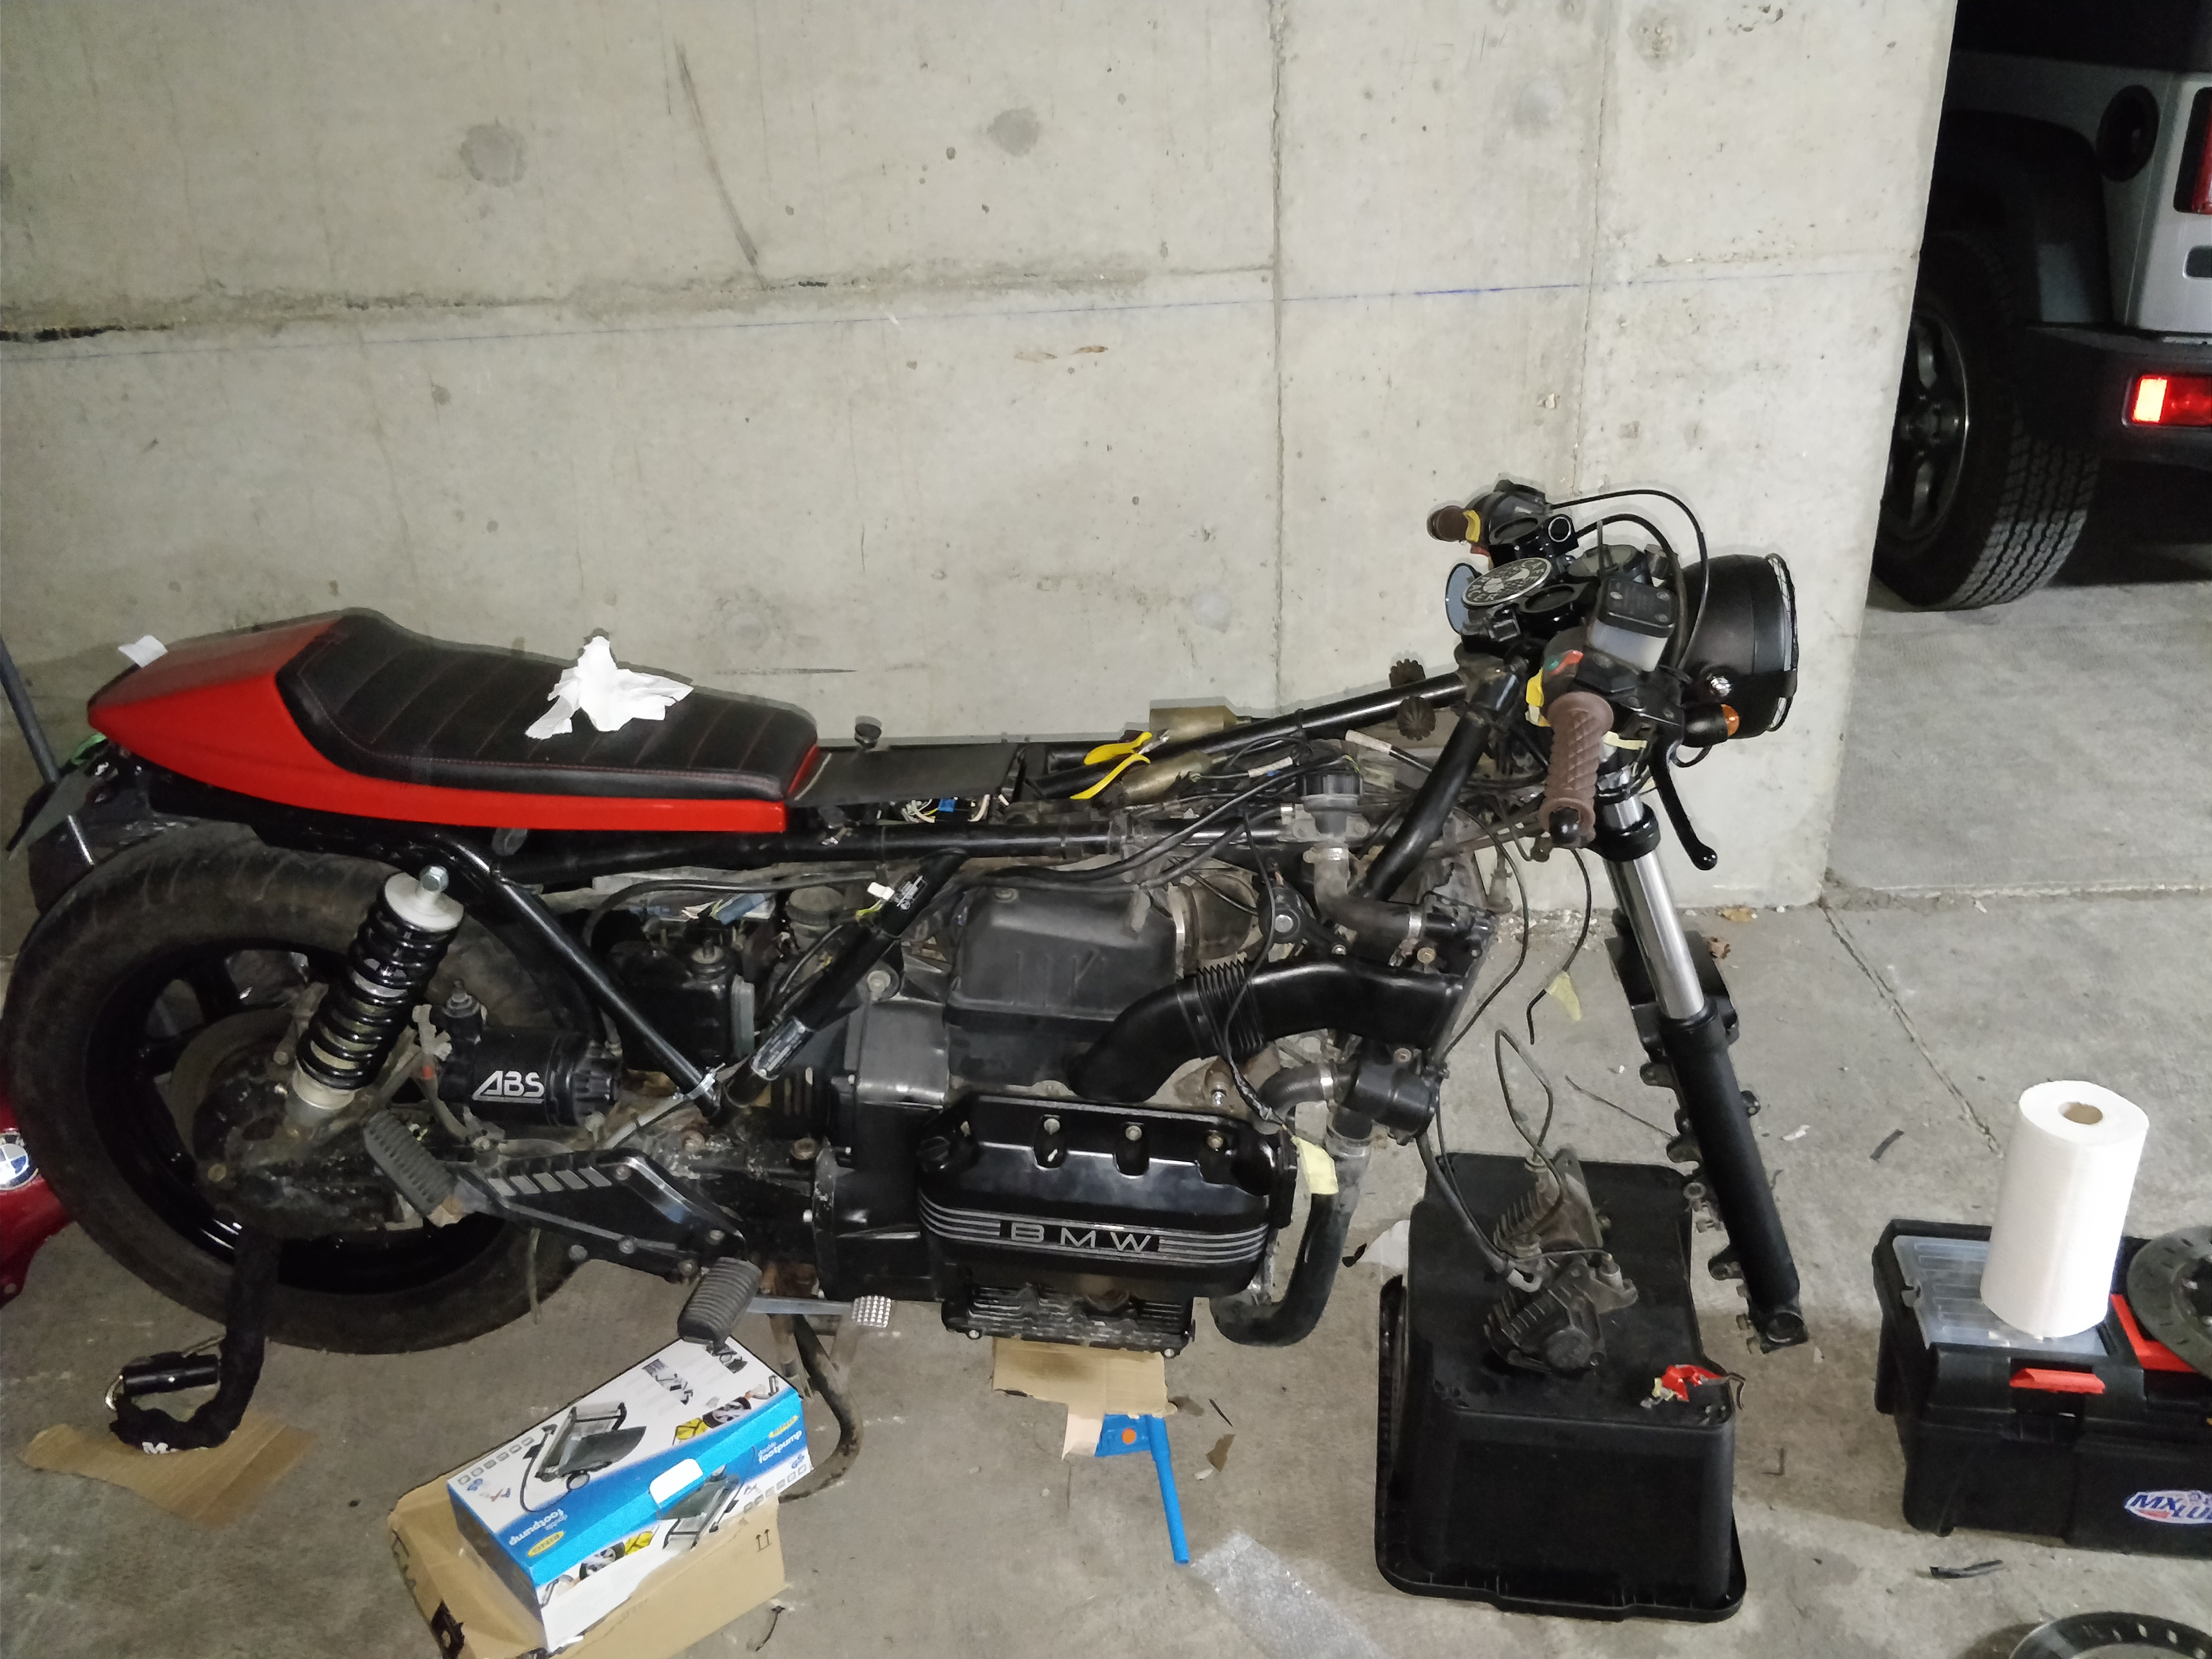 Picture of Fit All the New Parts on the Bike: Be Creative! There Is Always a Way!